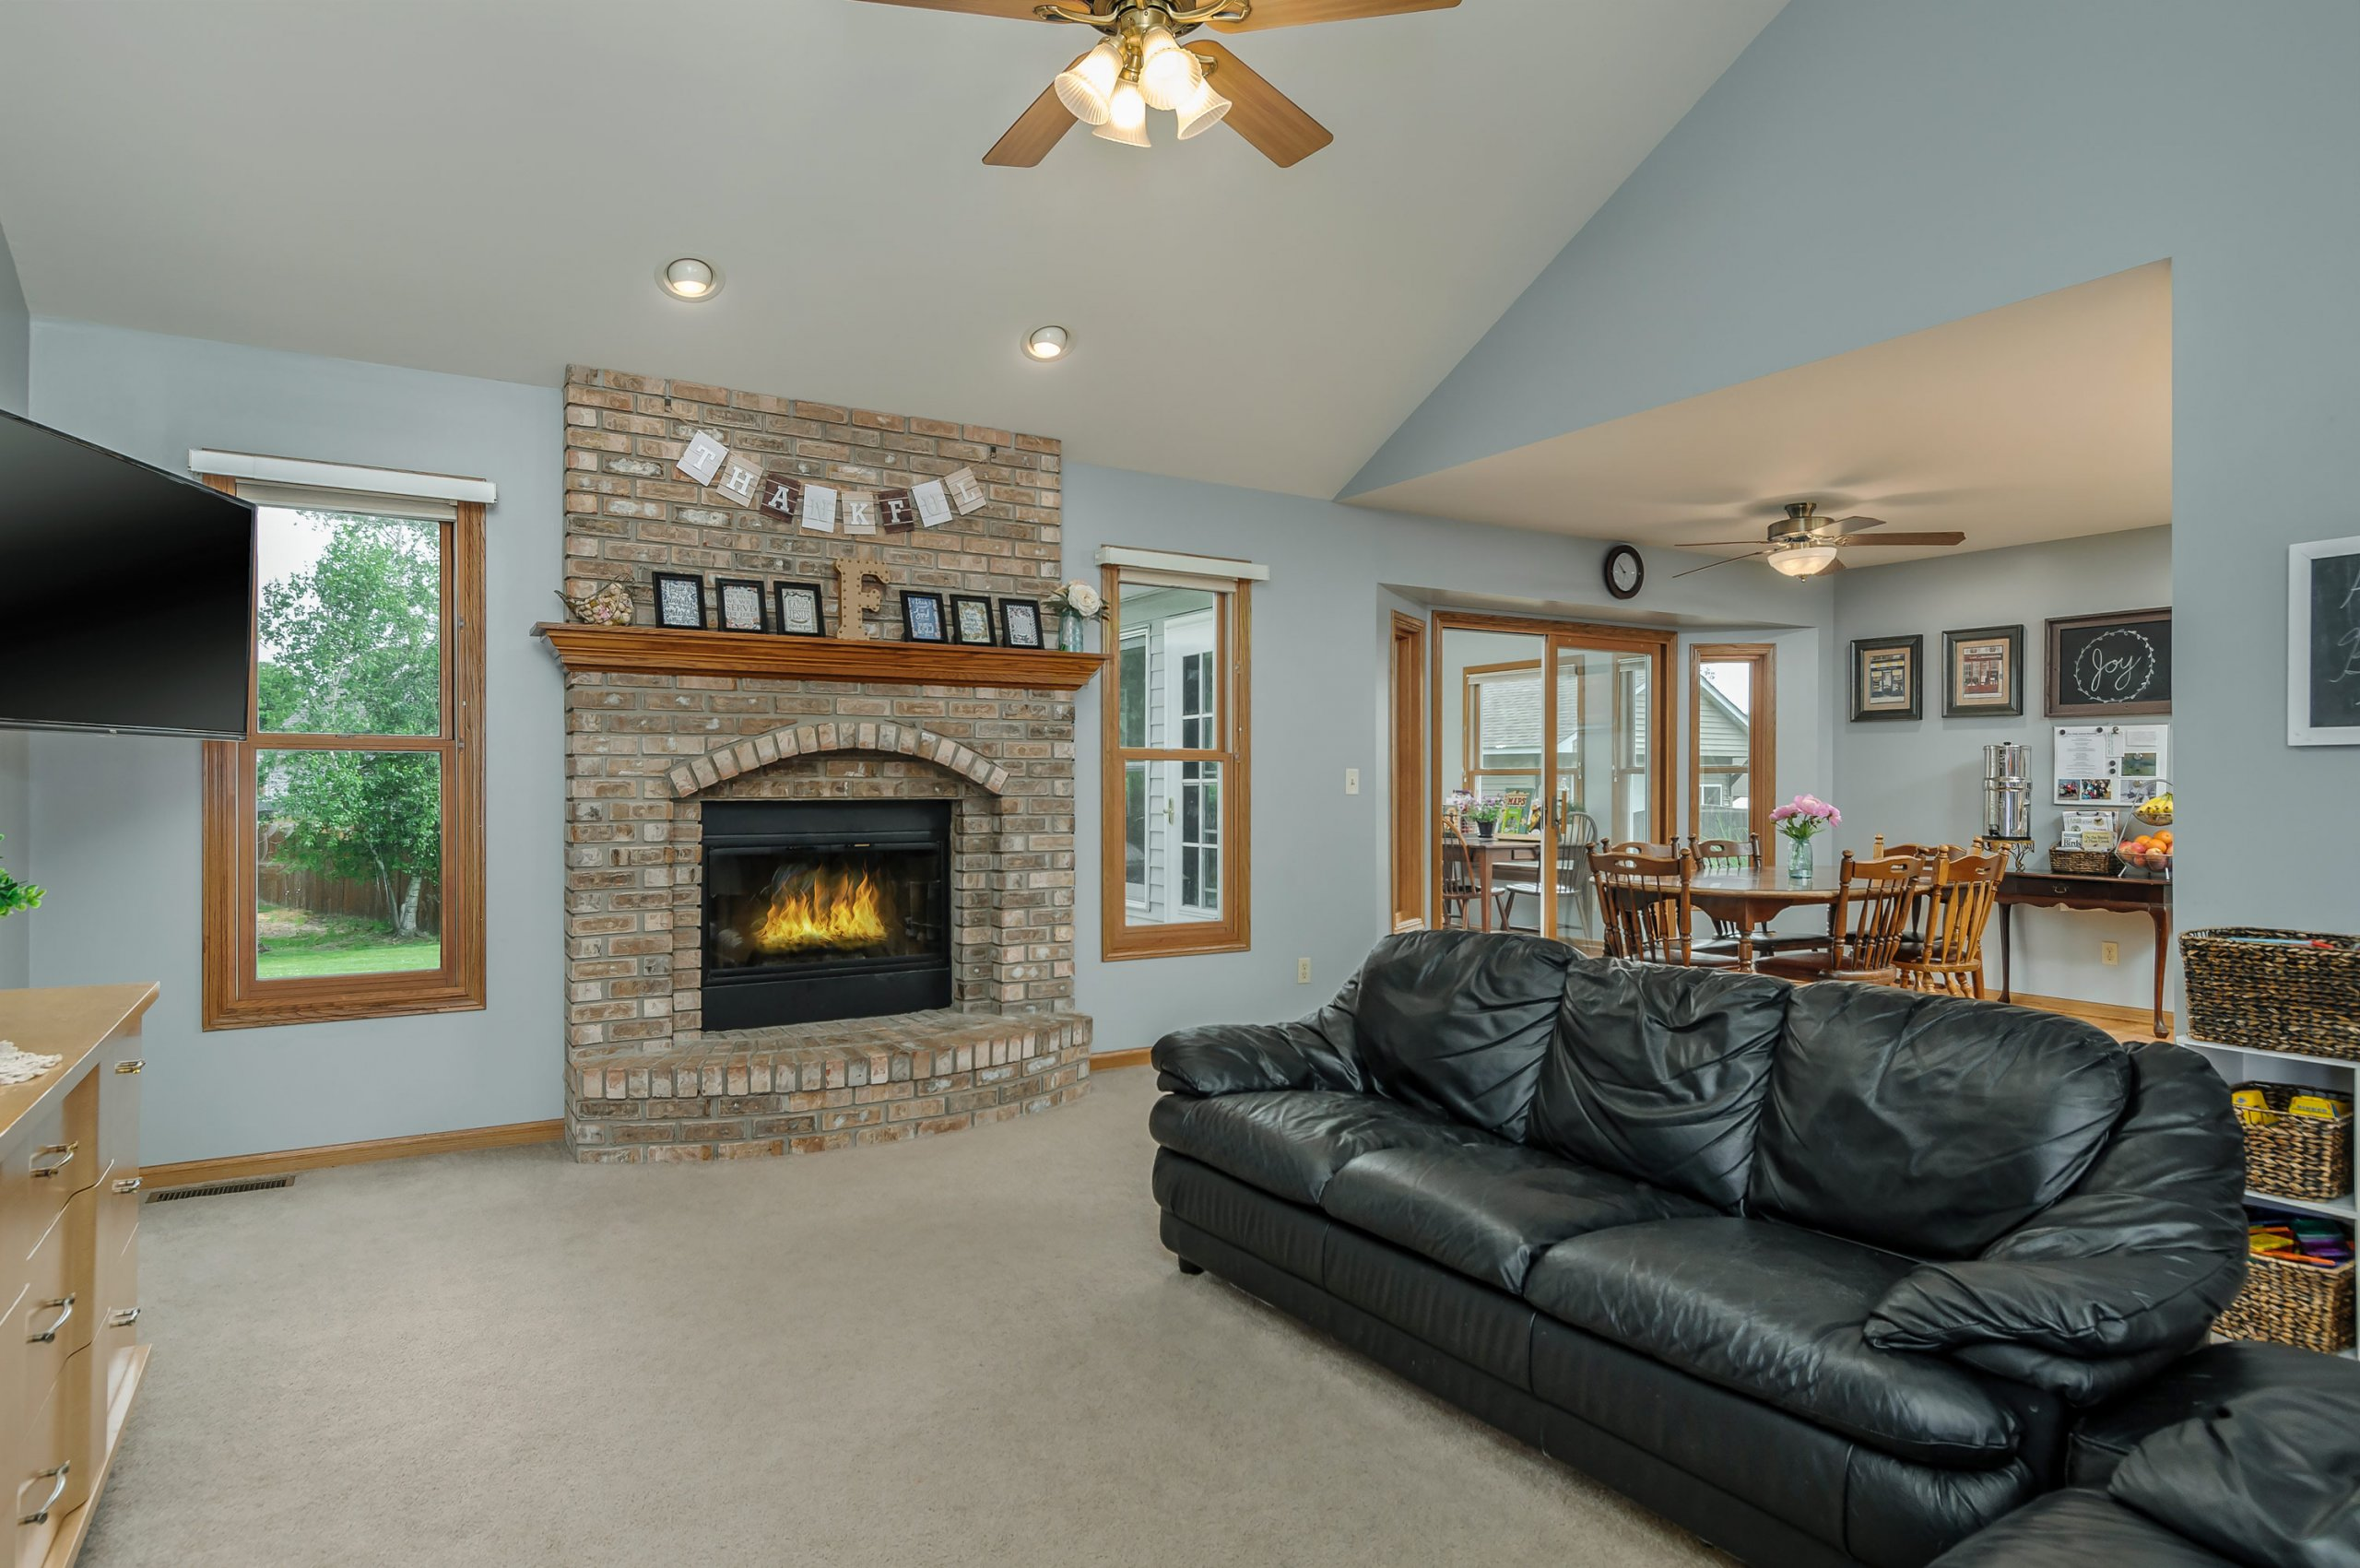 Open living room with brick fireplace - suburban Chicago, Illinois.